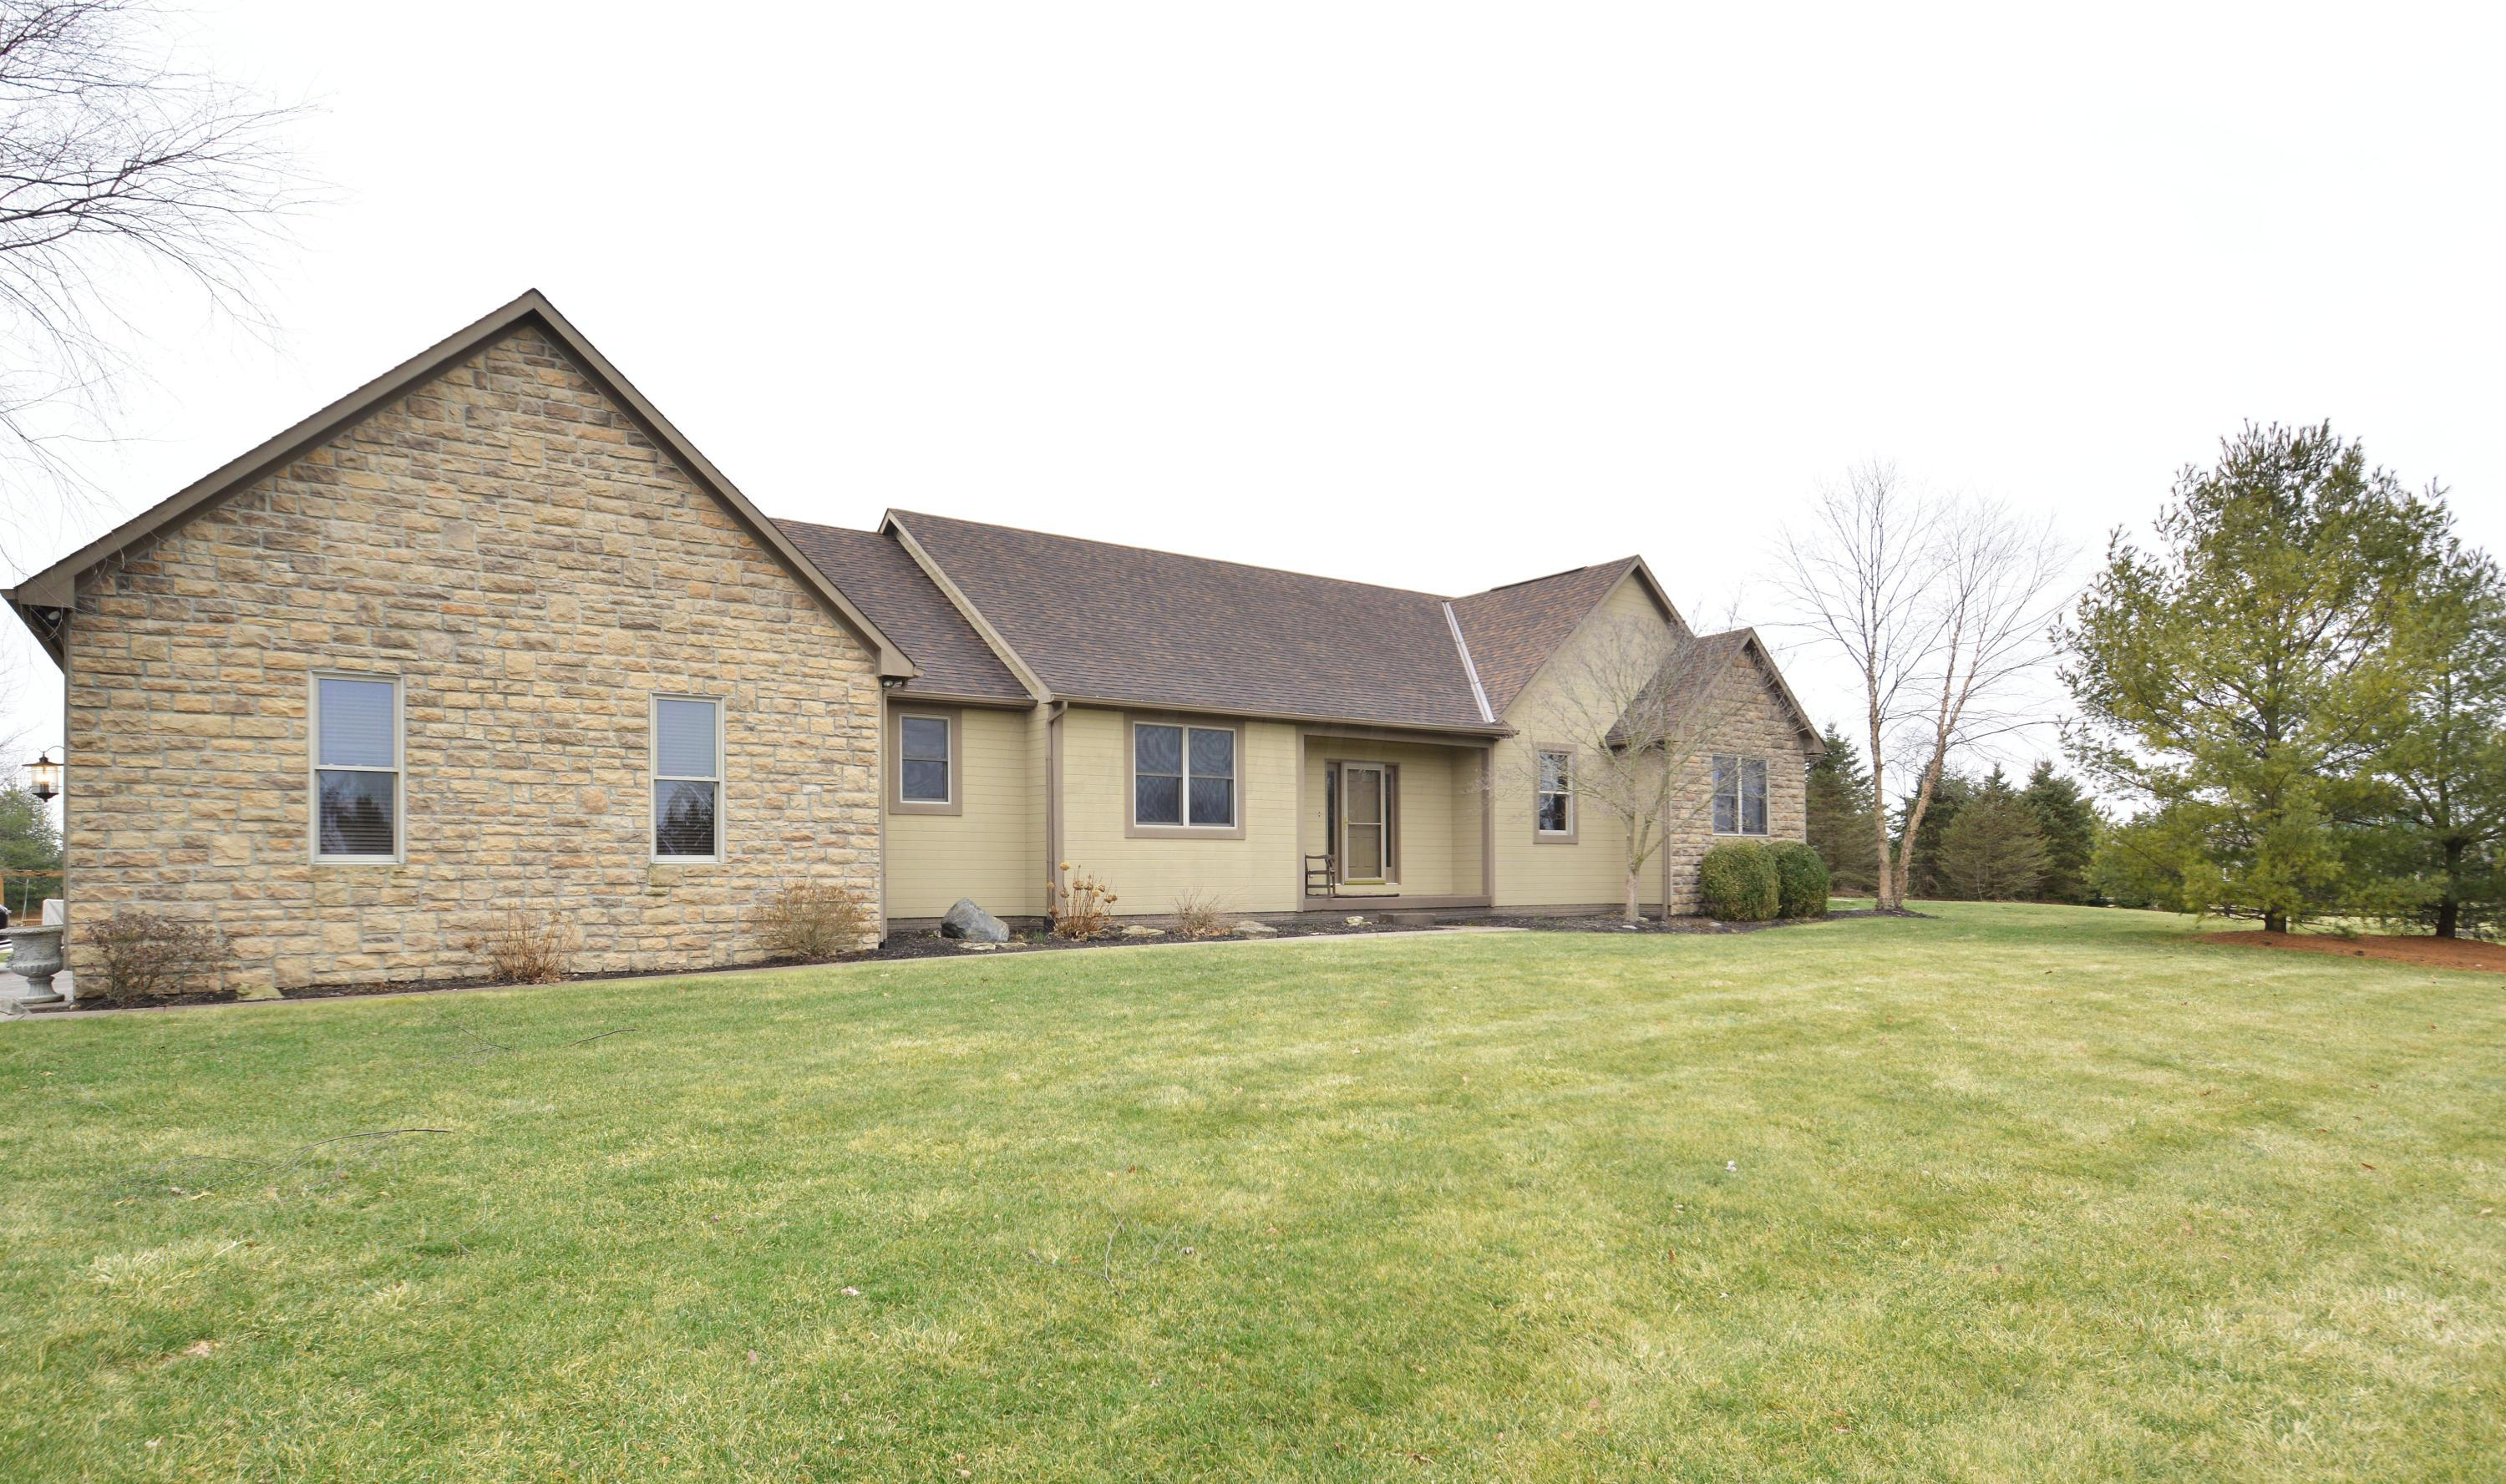 Photo of 4267 Clark Shaw Road, Powell, OH 43065